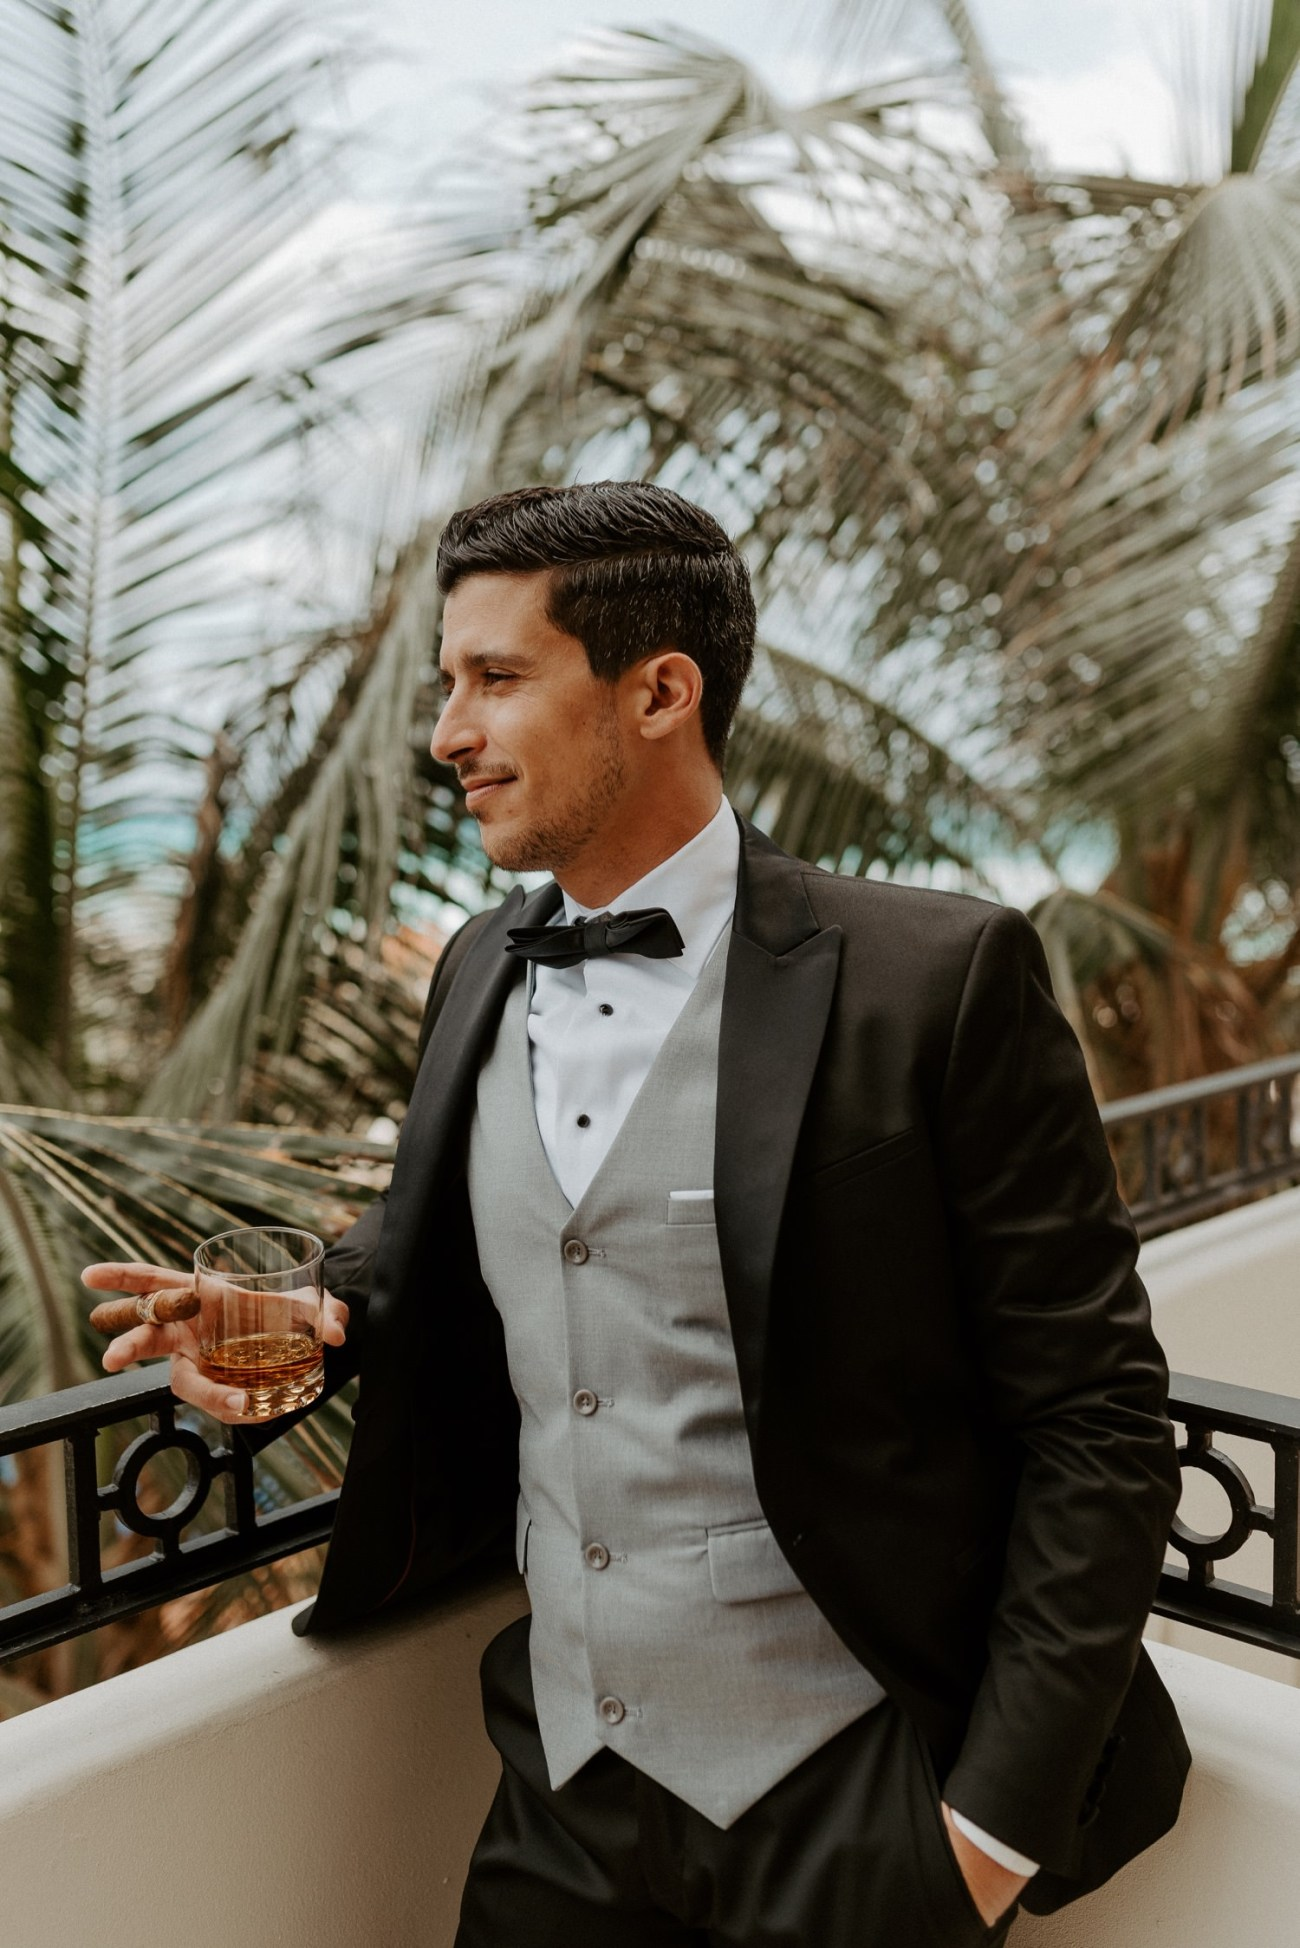 Cancun Destination Wedding Mexico Tulum Wedding Photographer Anais Possamai Photography 009